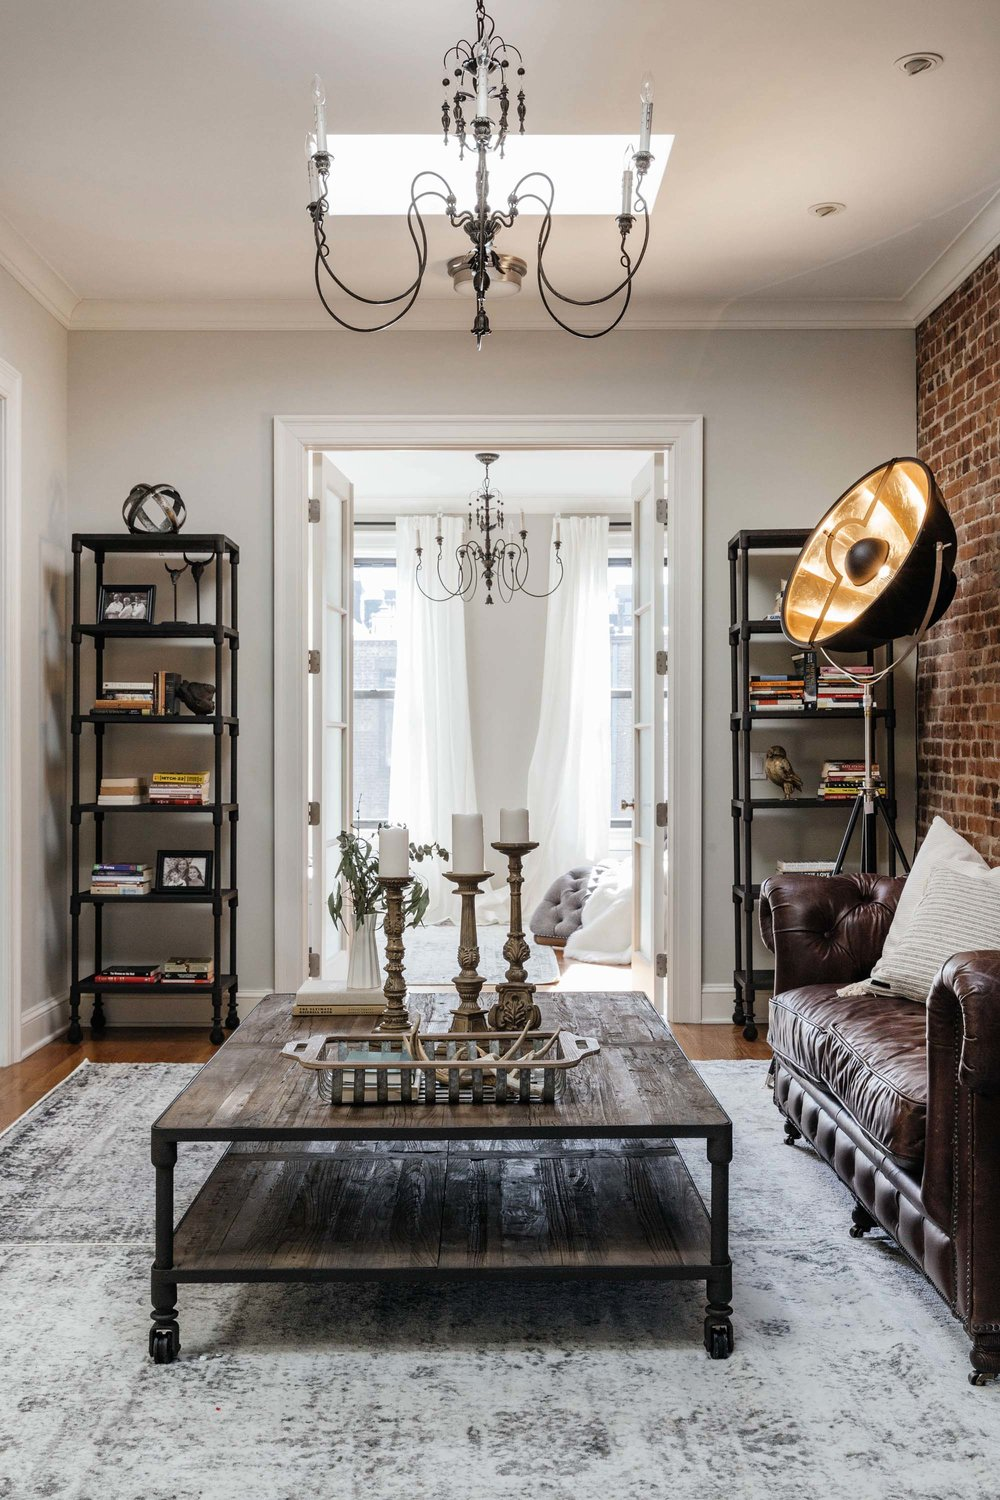 Rustic square coffee table and an antique standing lamp in the corner of the room